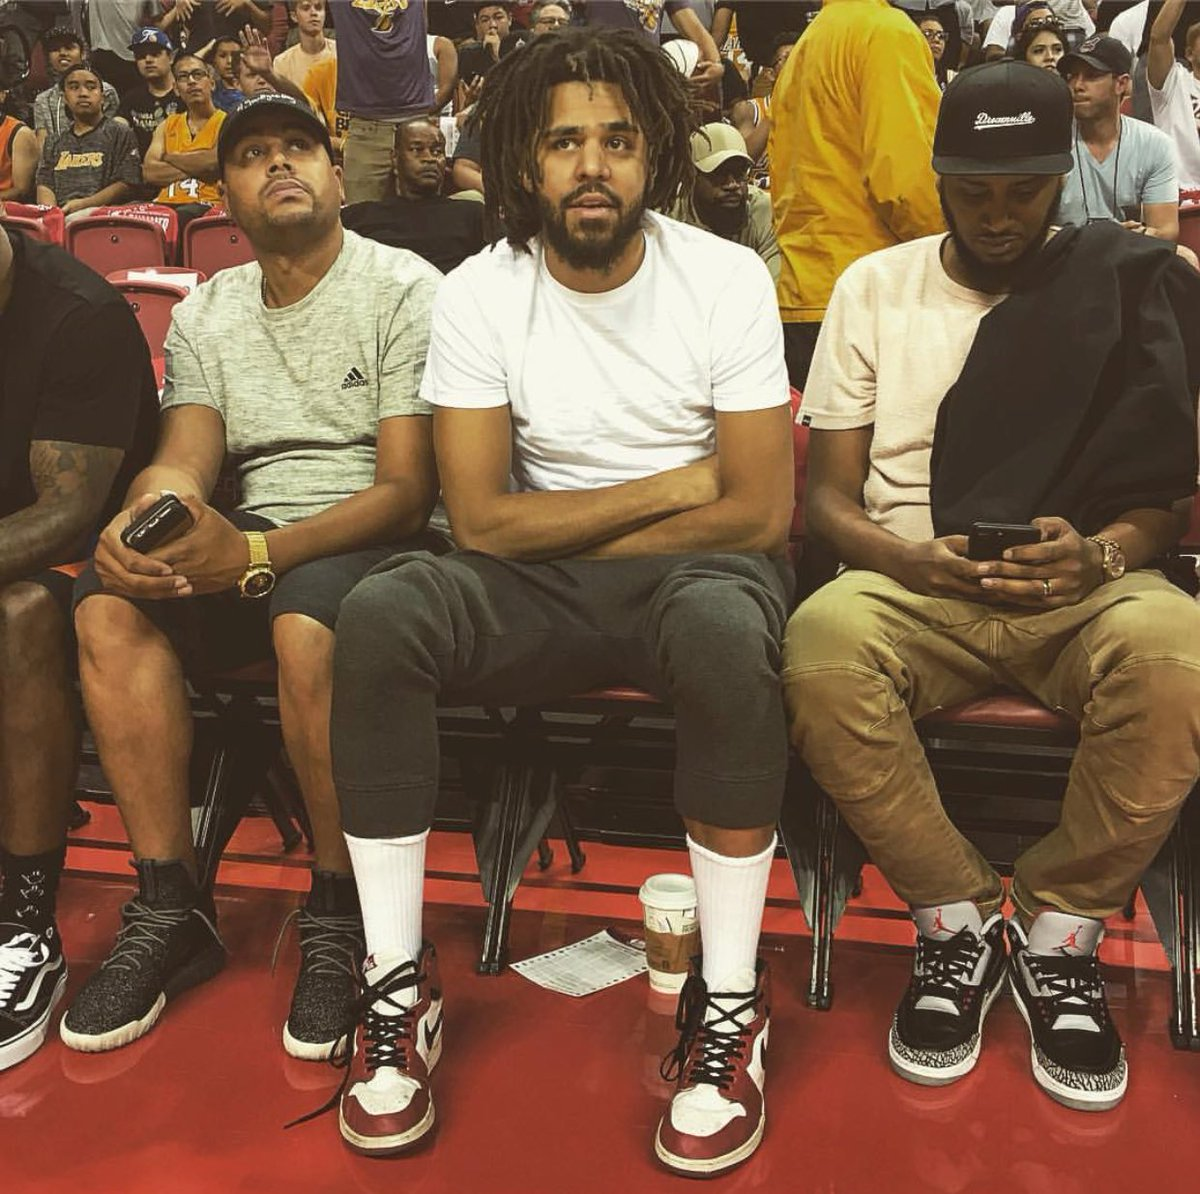 newest b1ca4 b46f9 ... J.Cole Court-side ...